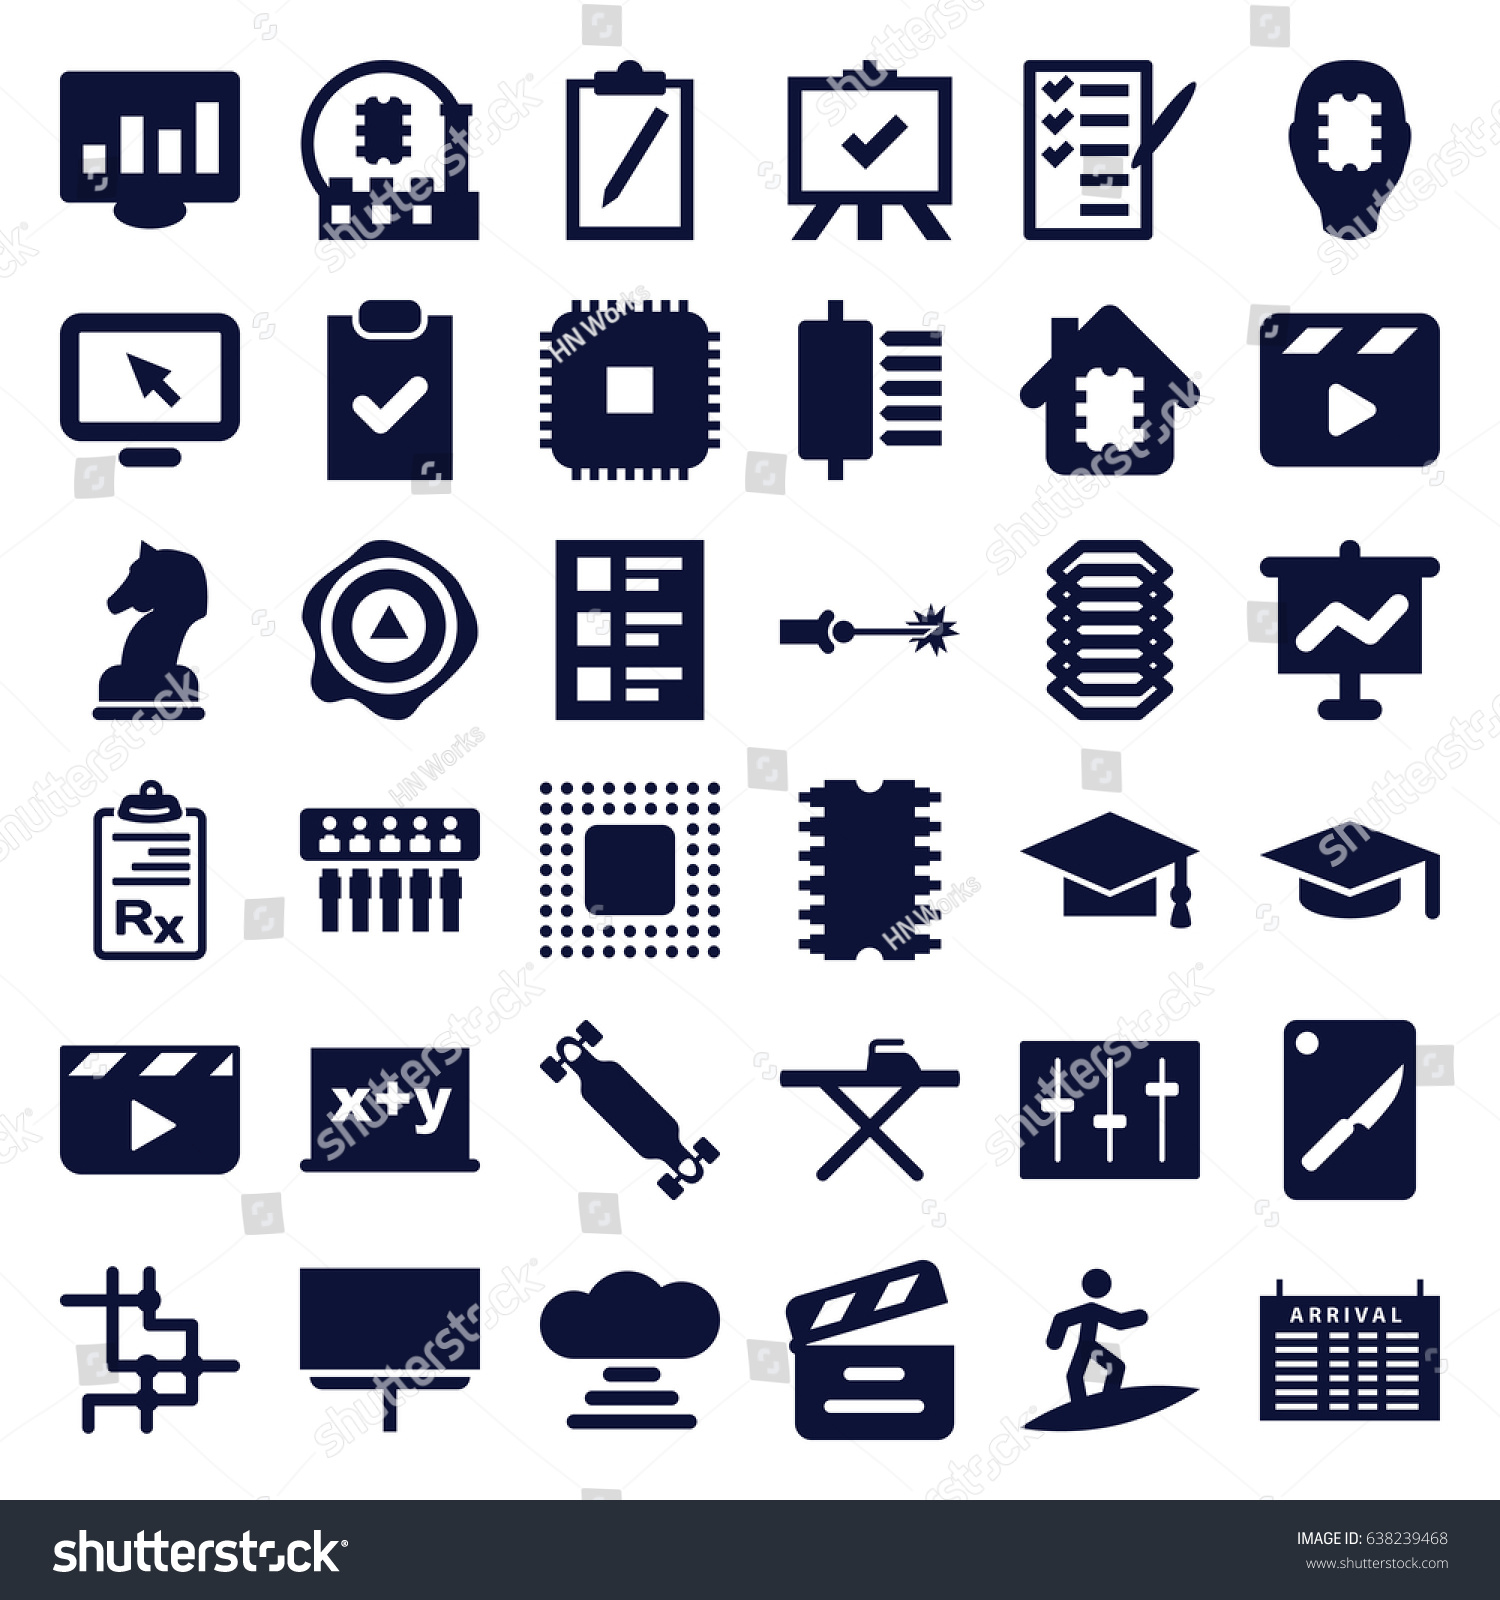 Board icons set set 36 board stock vector 638239468 shutterstock board icons set set of 36 board filled icons such as arrival table ironing buycottarizona